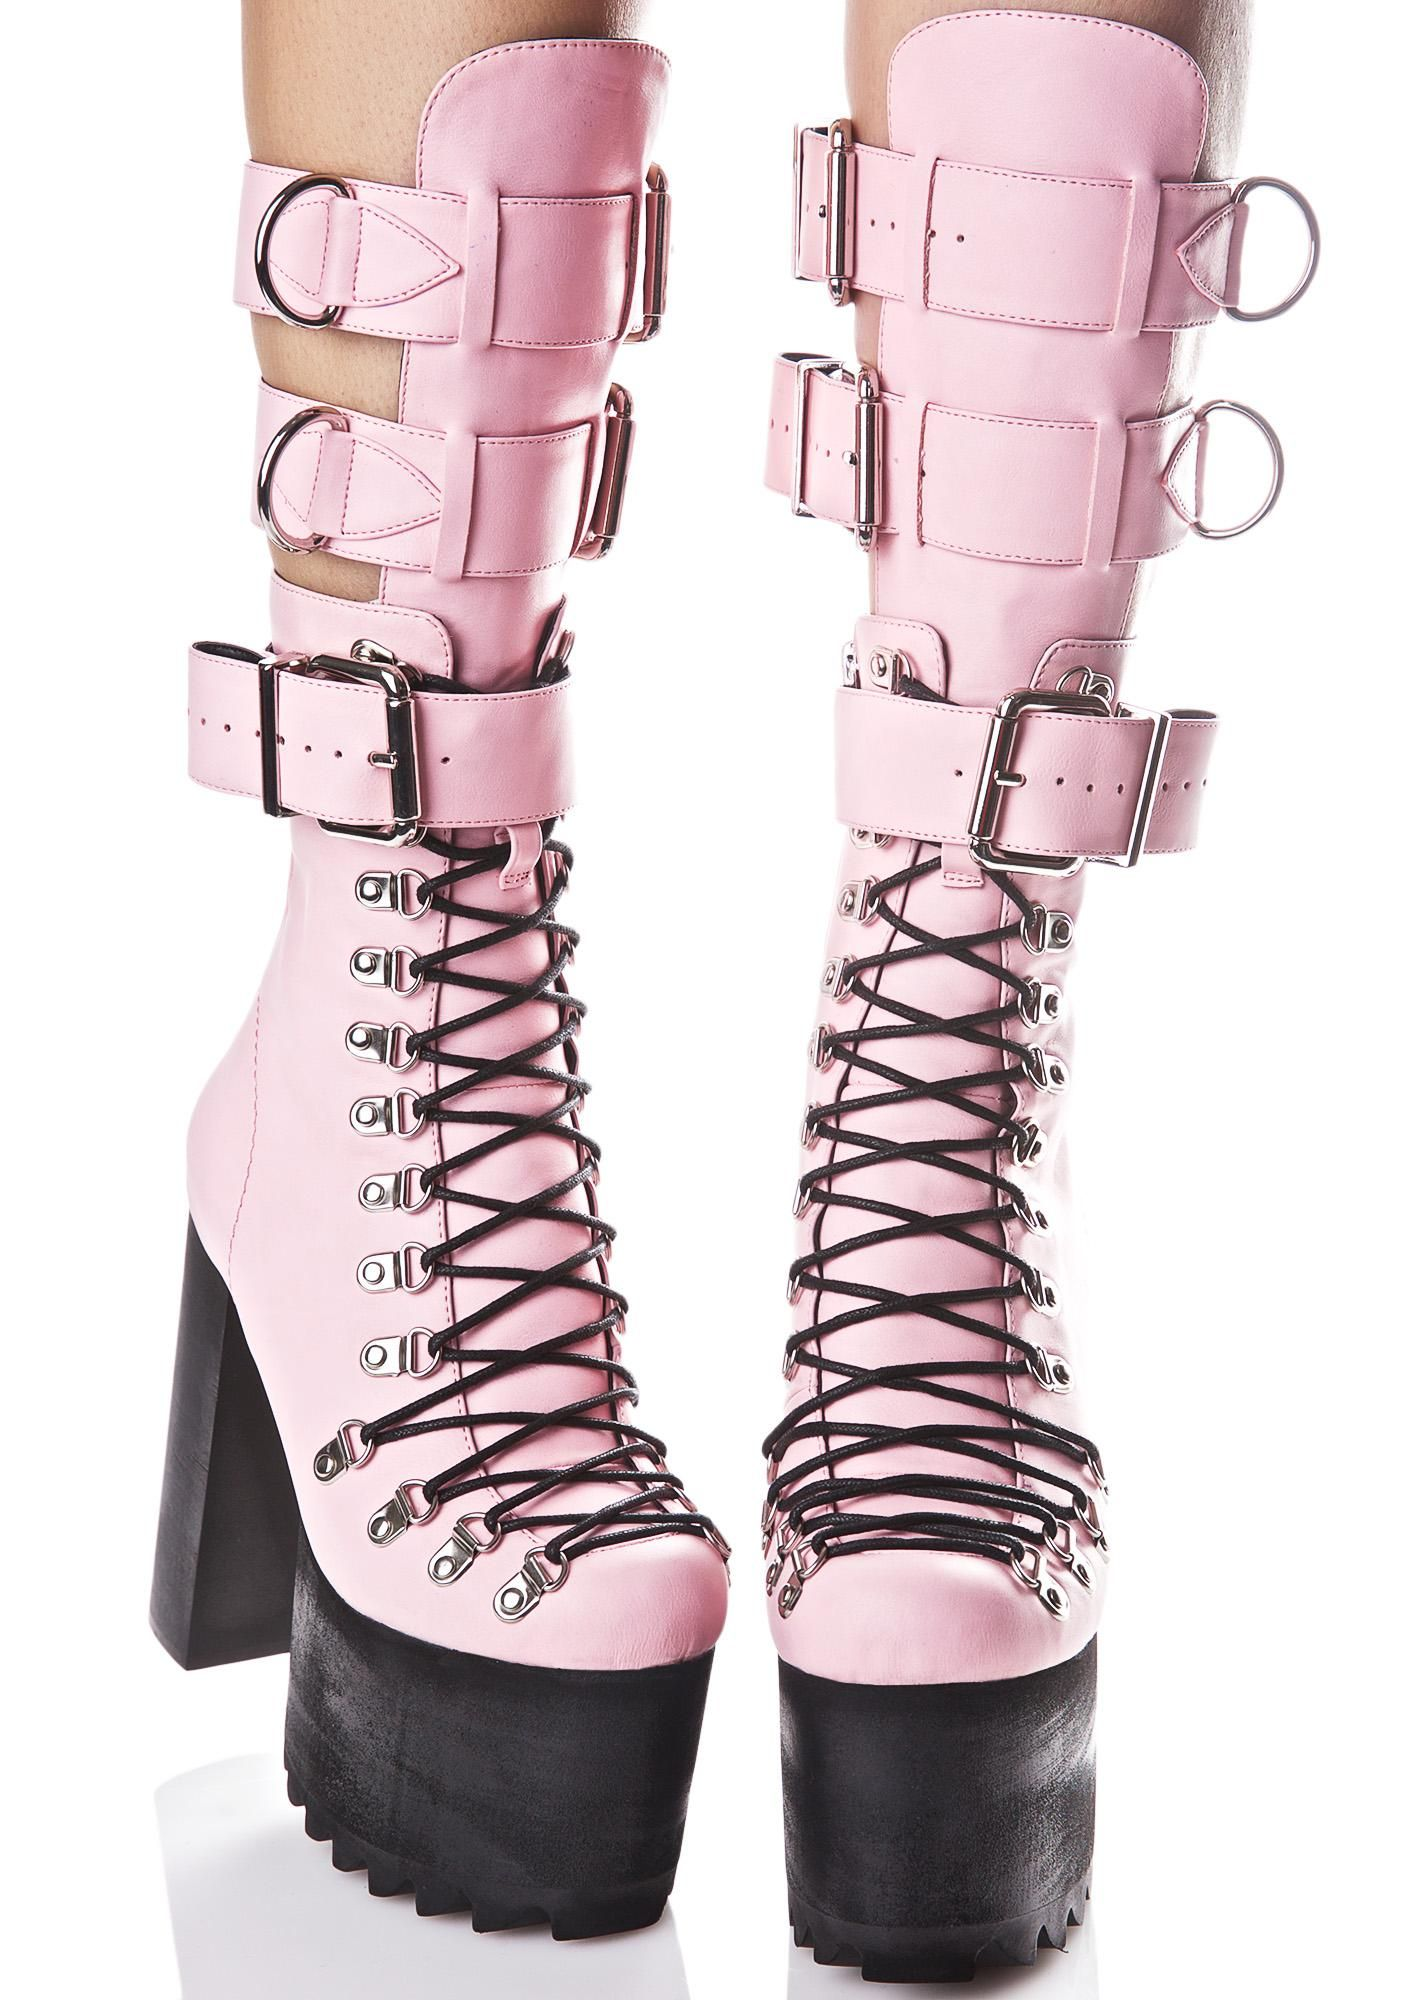 7484cb72f80 These incredible boots feature a super smooth baby pink colored vegan  leather construction